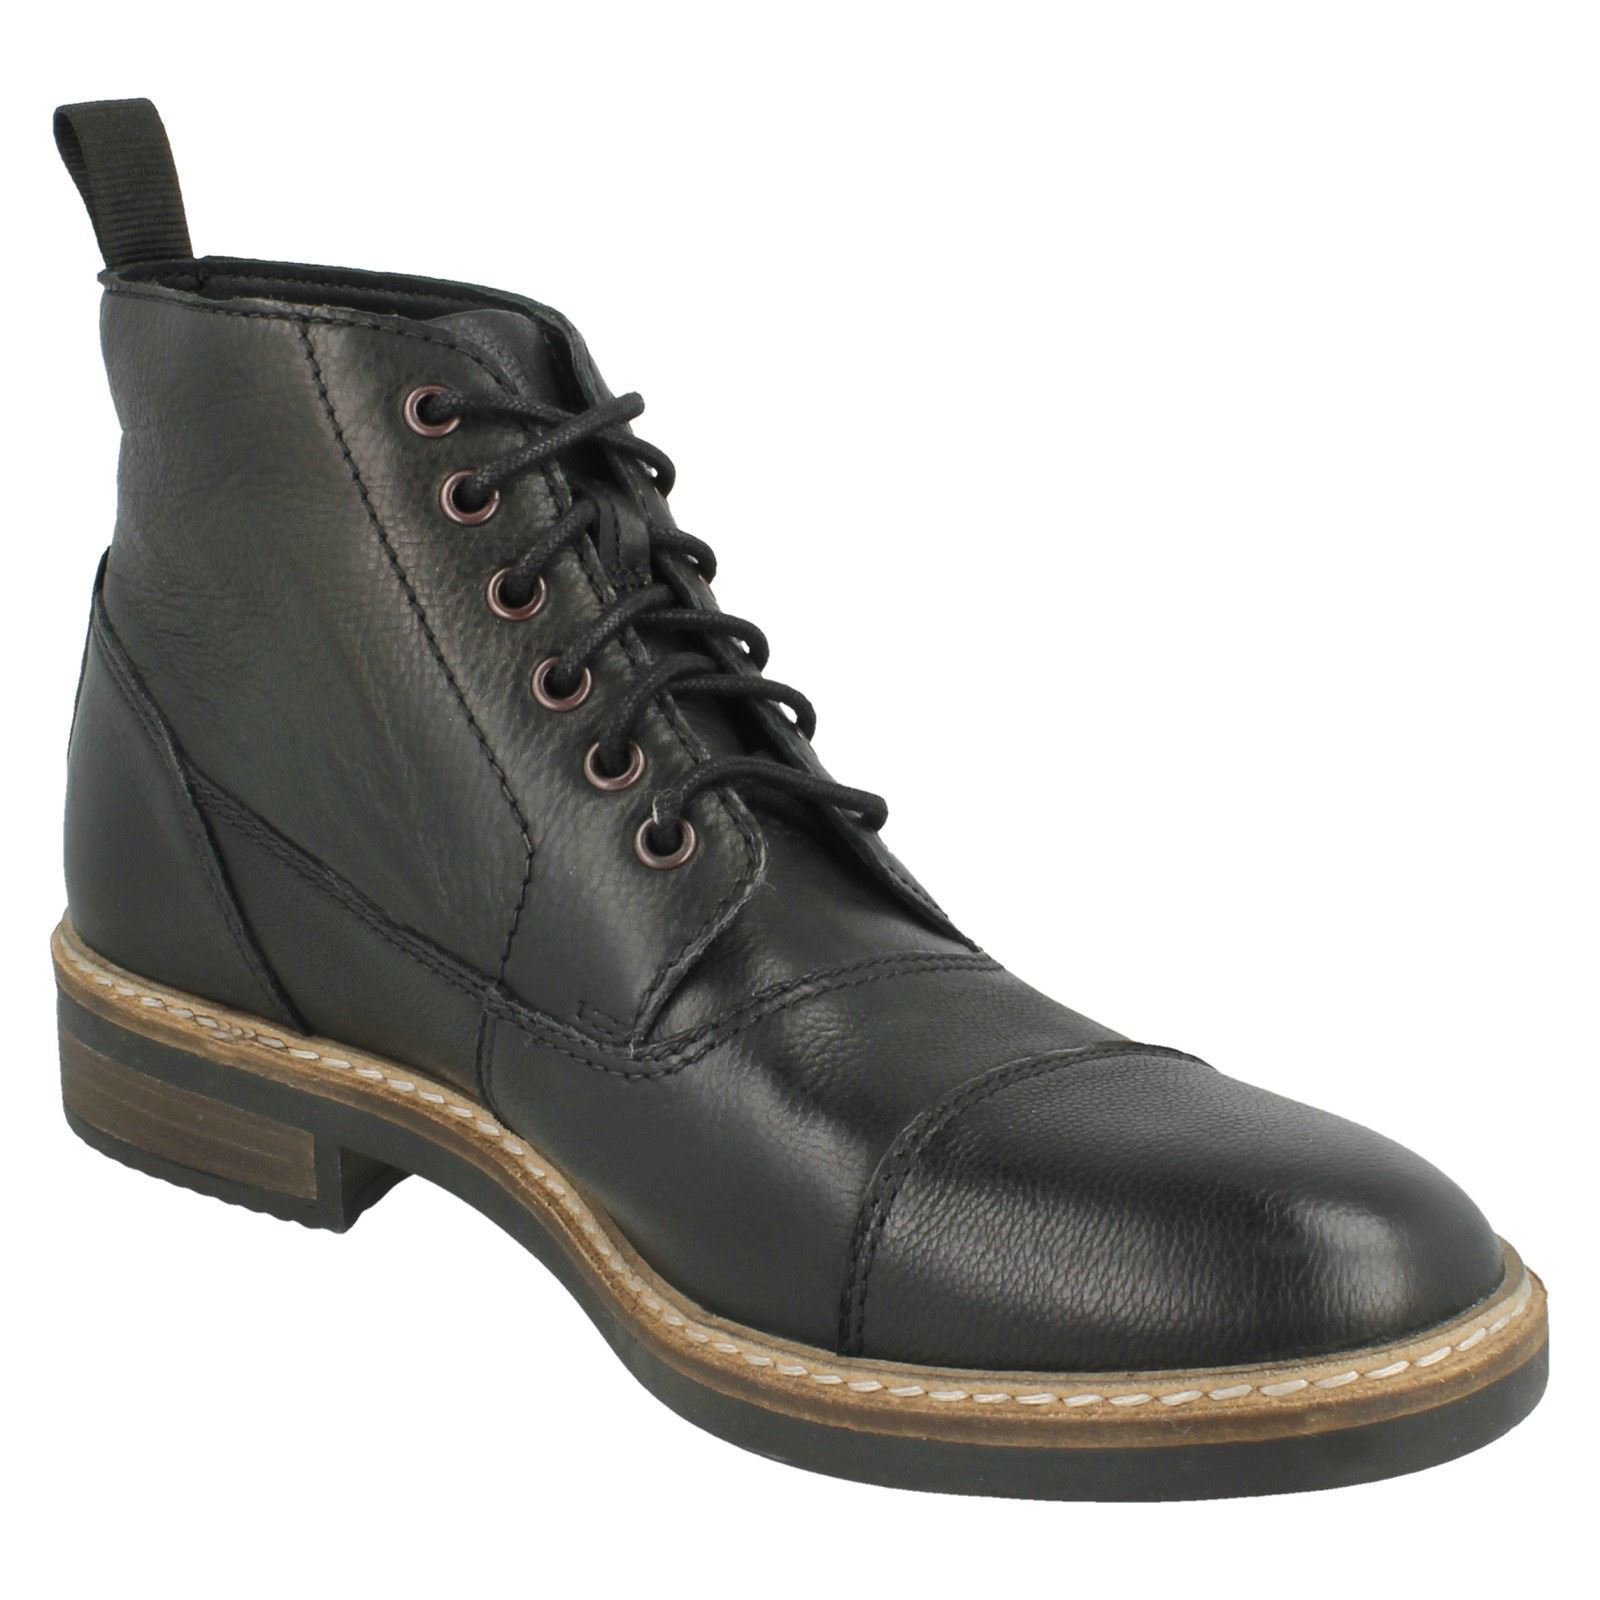 d6f19ae9c020 Men  s Clarks Smart Lace Up Boots Style - Blackford Cap